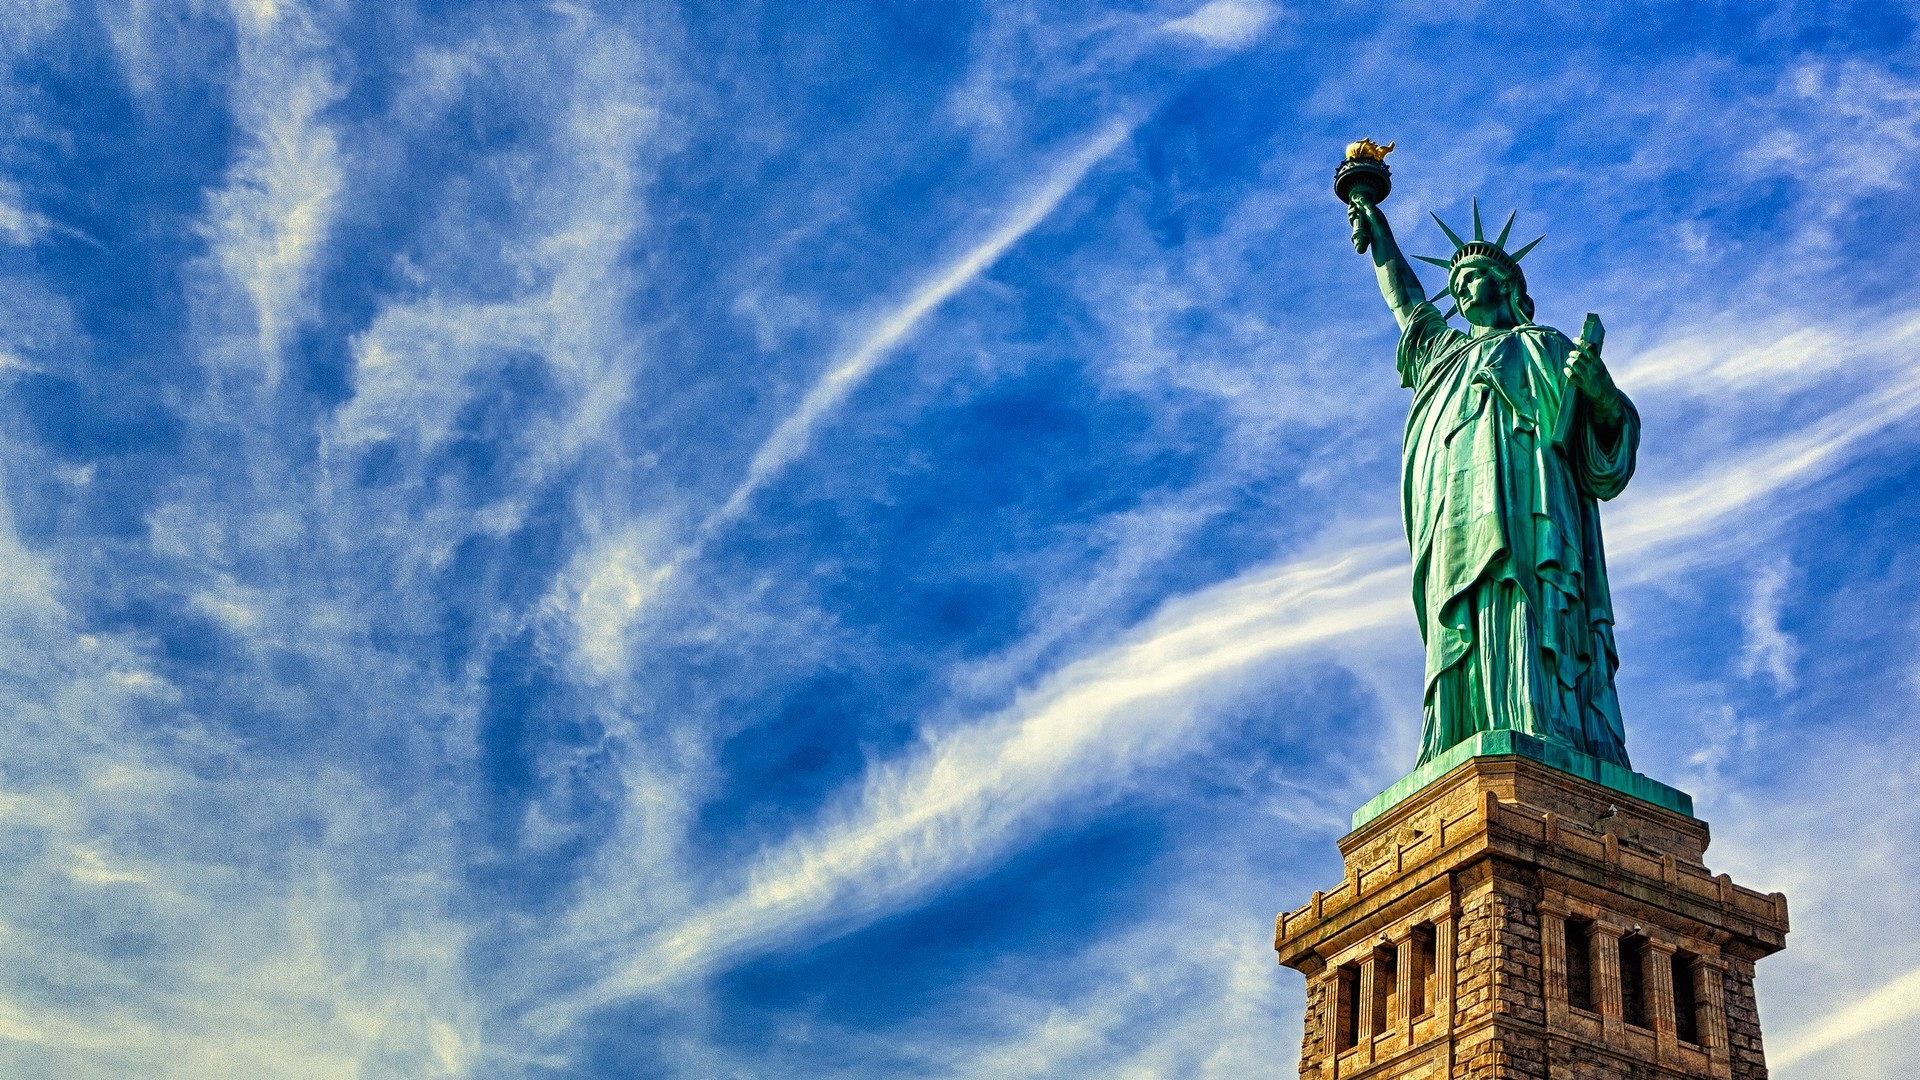 Beautiful Statue of Liberty Wallpaper